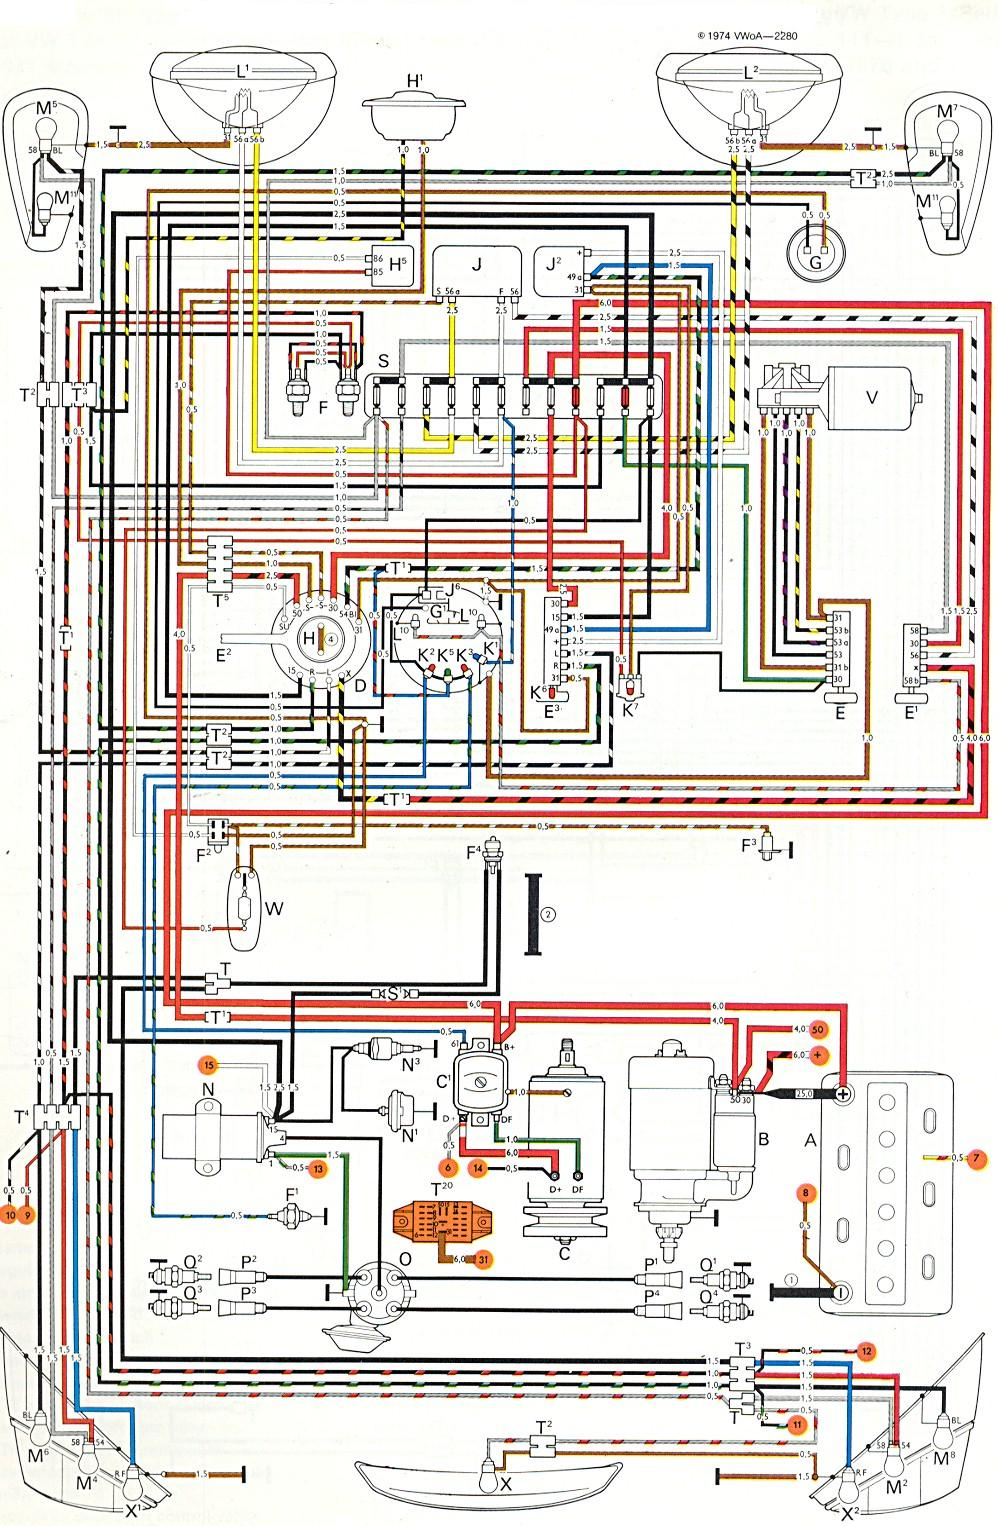 vw beetle wiring diagram 2000 1982 honda gl1100 for 2002 great installation of 2001 engine schema diagrams rh 26 justanotherbeautyblog de volkswagen